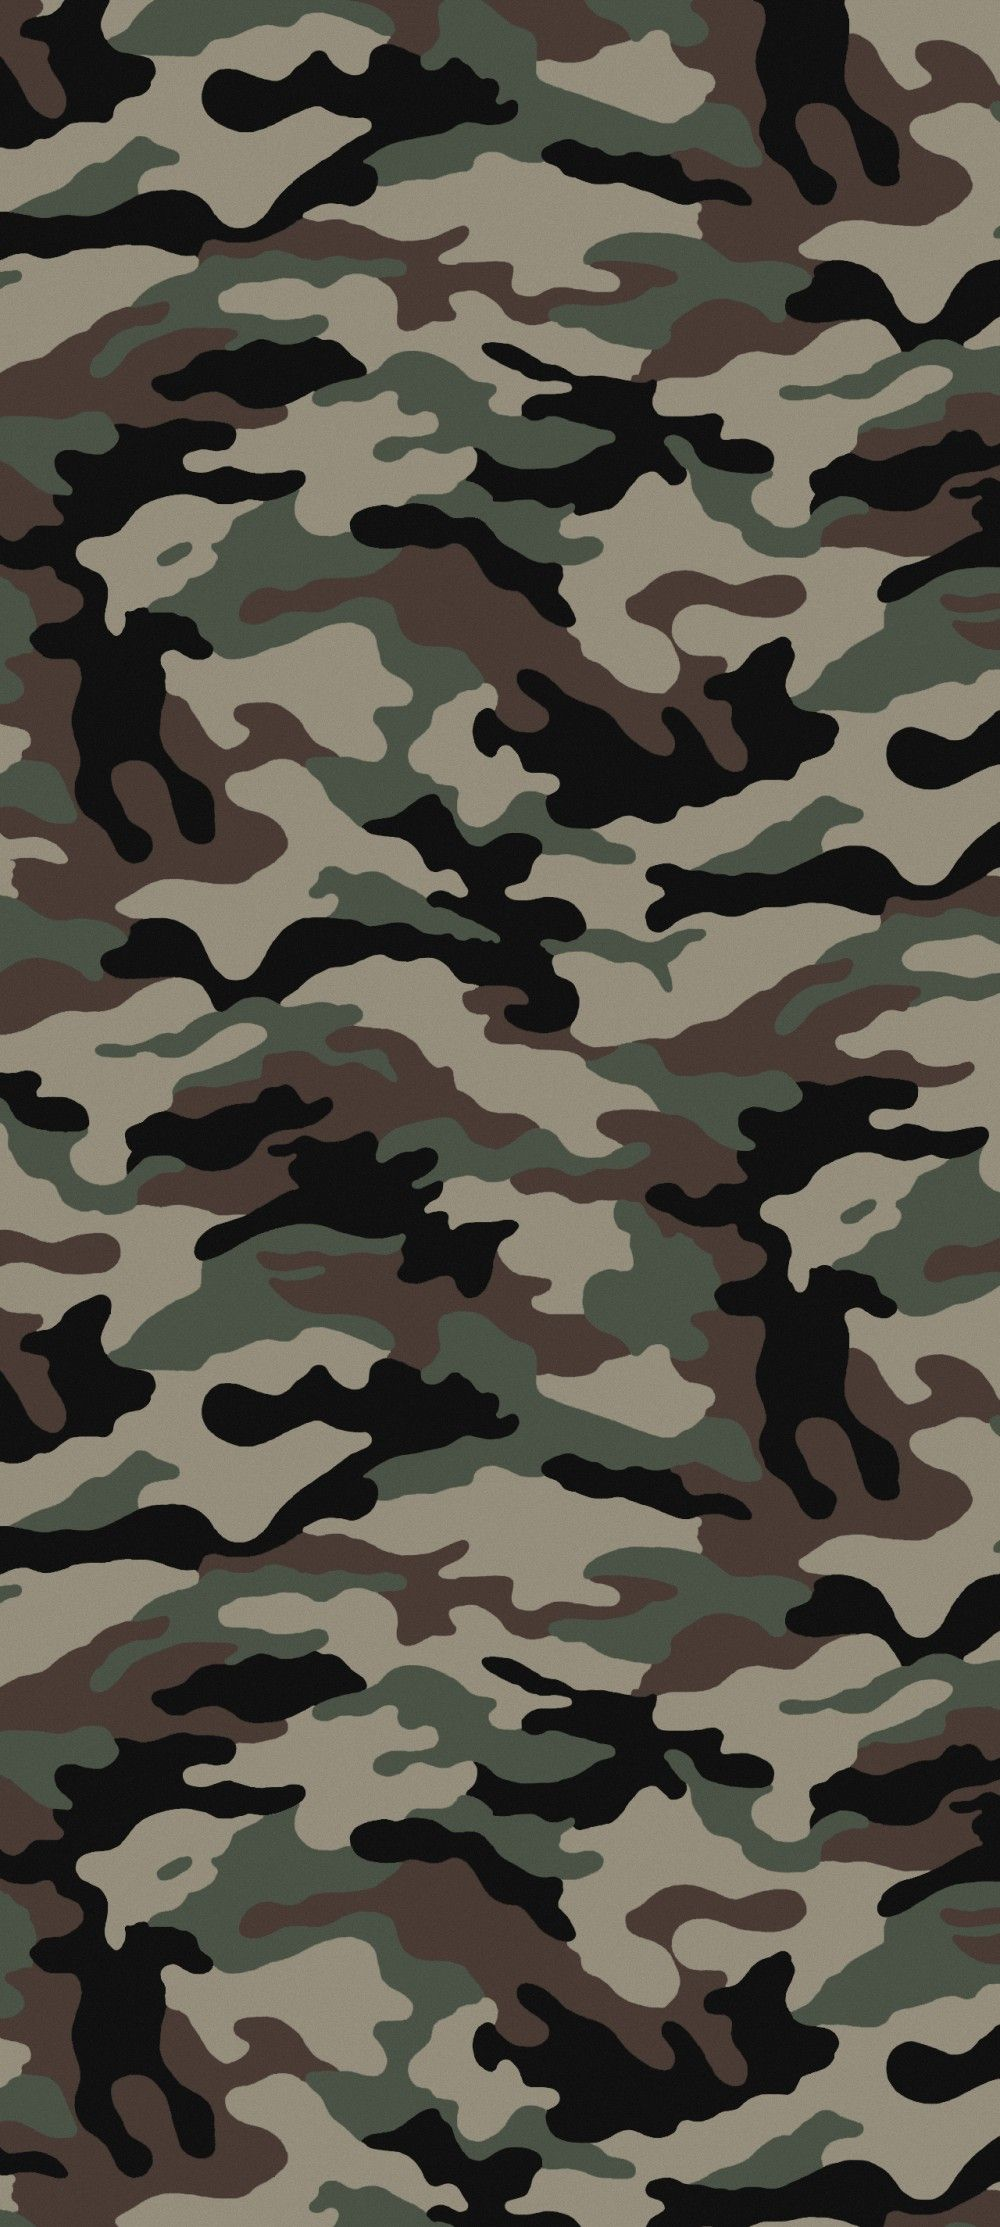 Camouflage Phone Wallpapers In 2021 Camo Wallpaper Camouflage Wallpaper Abstract Wallpaper Backgrounds